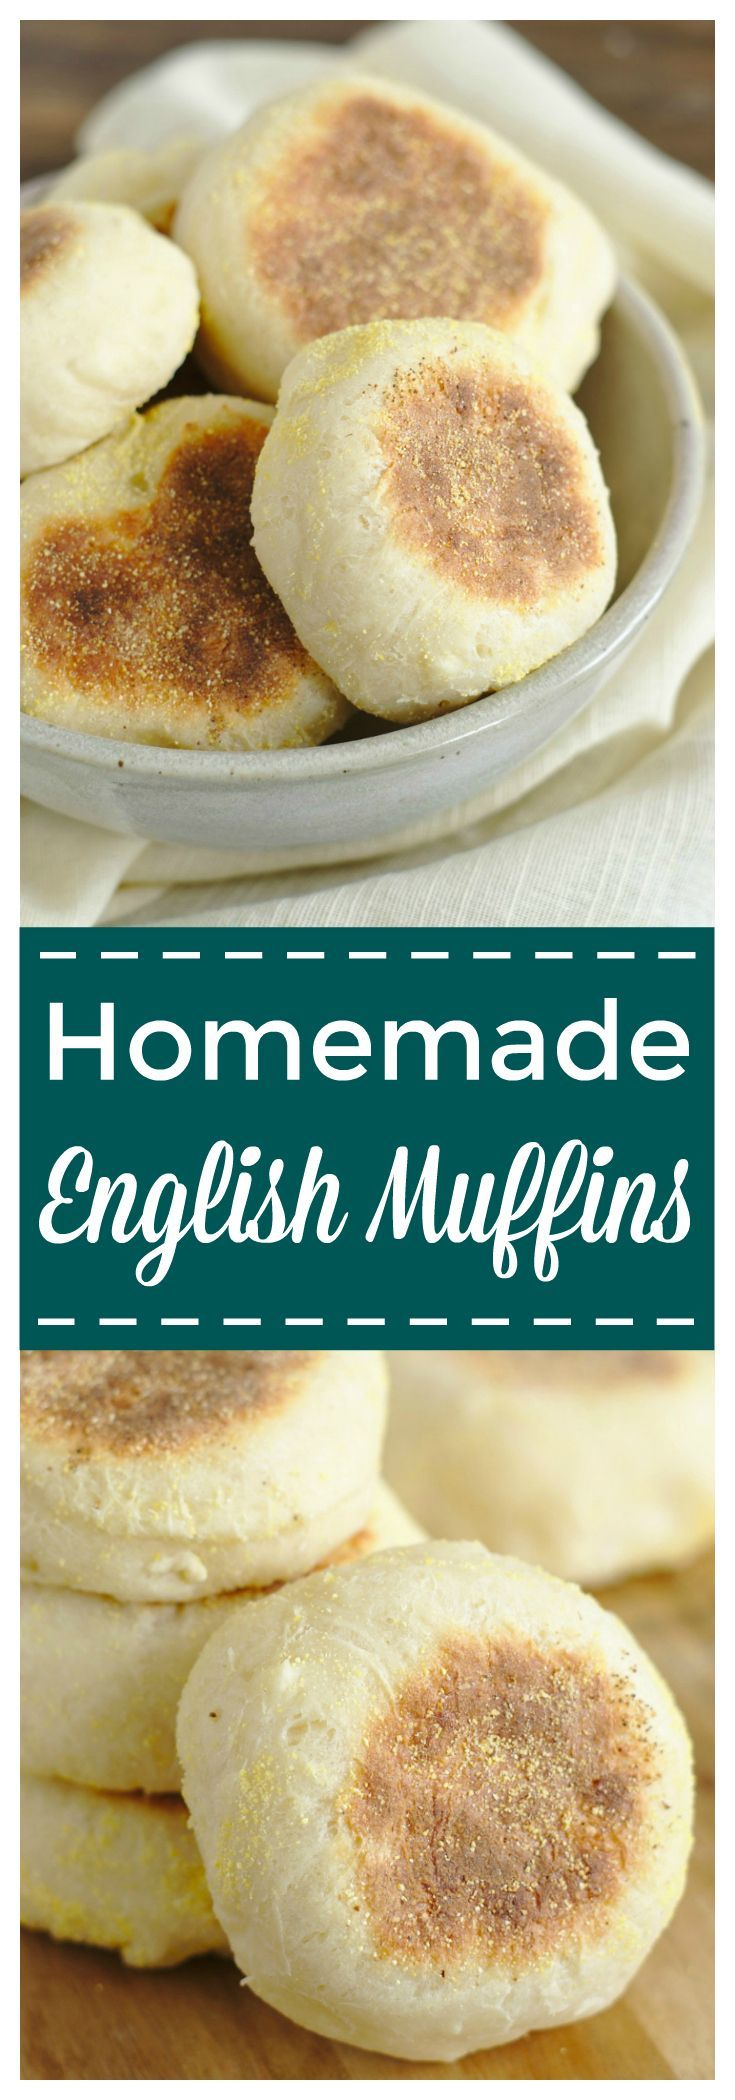 Homemade English Muffins – A delicious breakfast classic that is so easy to make! These english muffins are perfect topped with butter and jam! #english #breakfast #muffins #baking